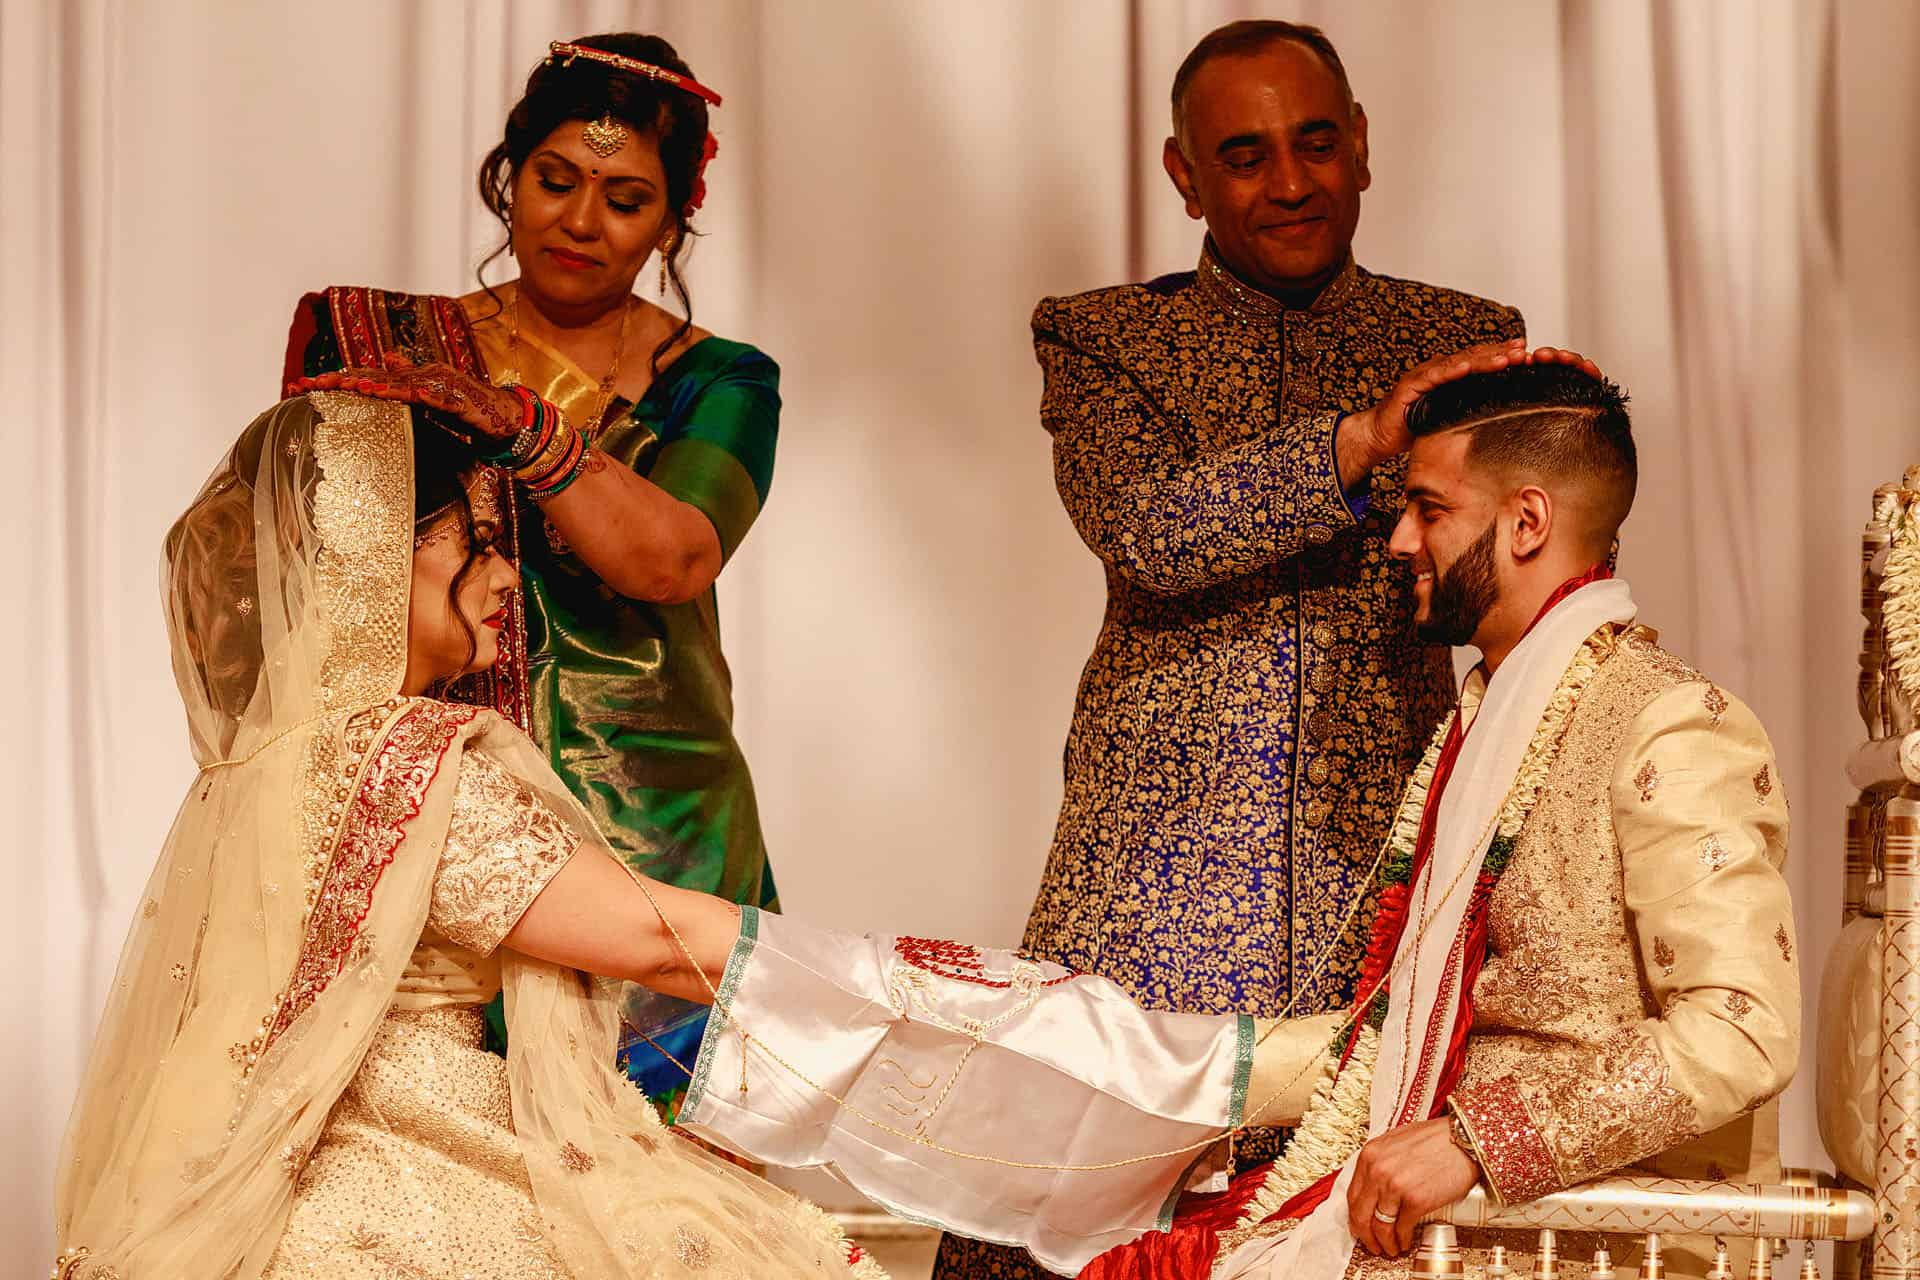 grosvenor house london hindu wedding